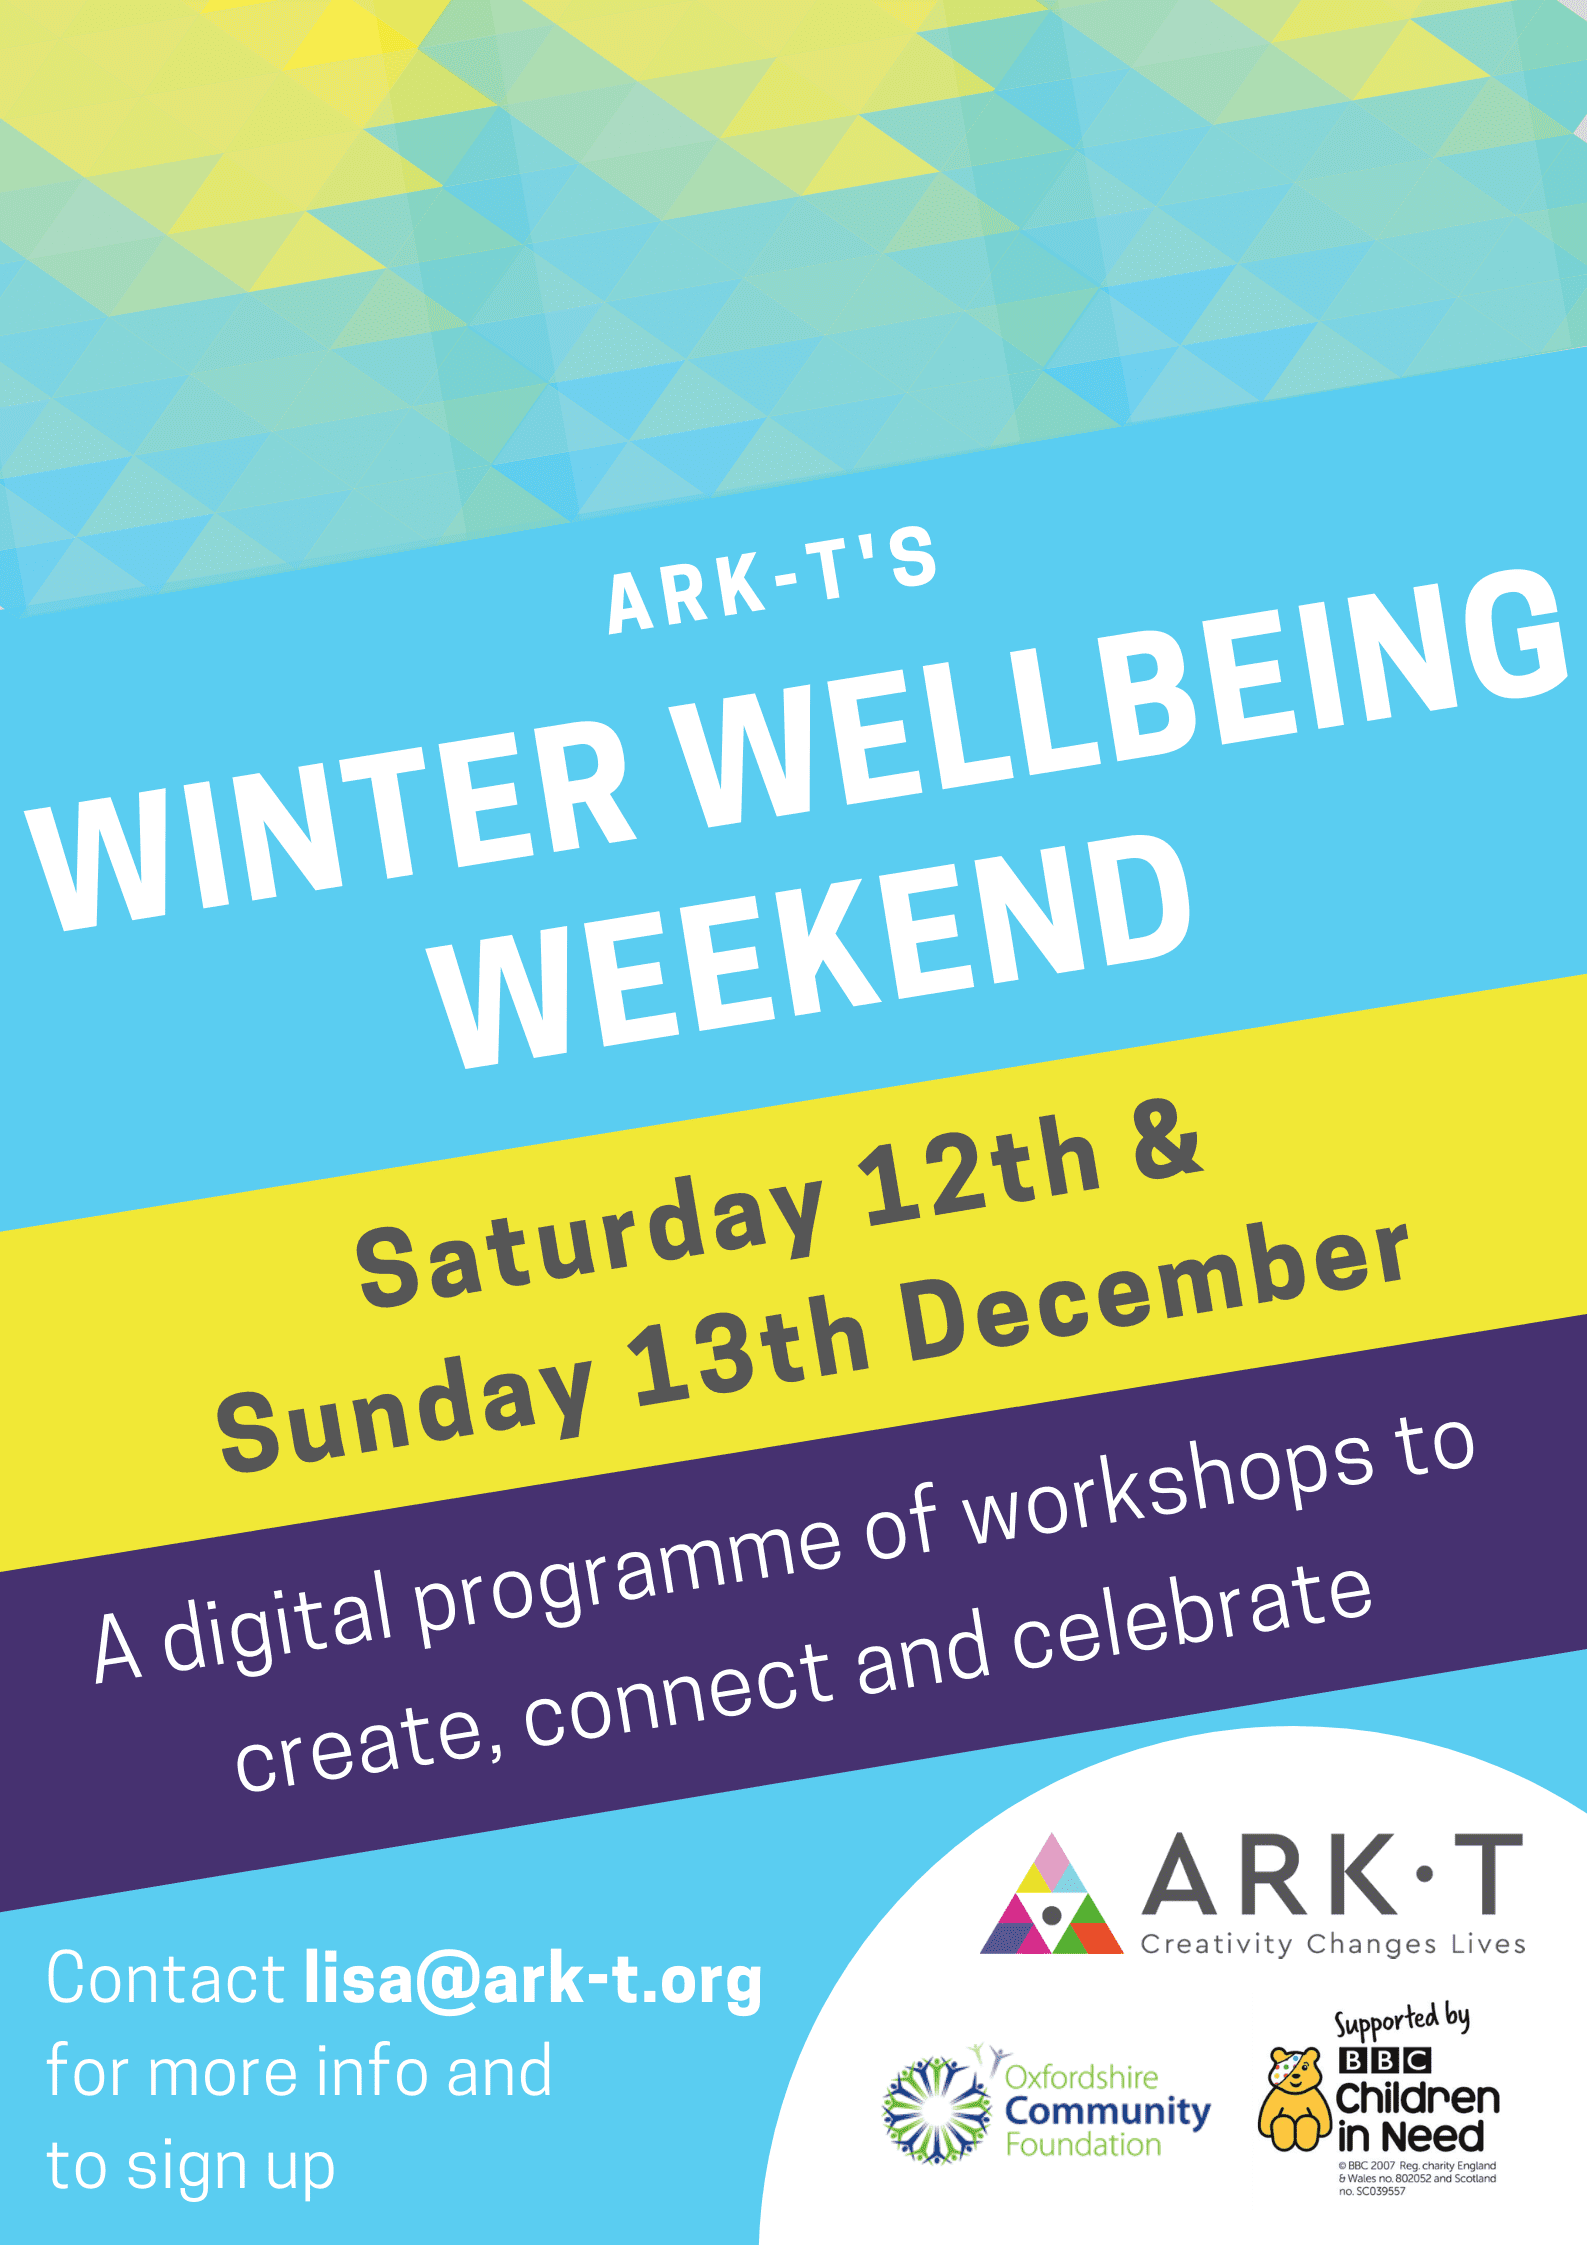 WINTER WELLBEING WEEKEND with Ark-T